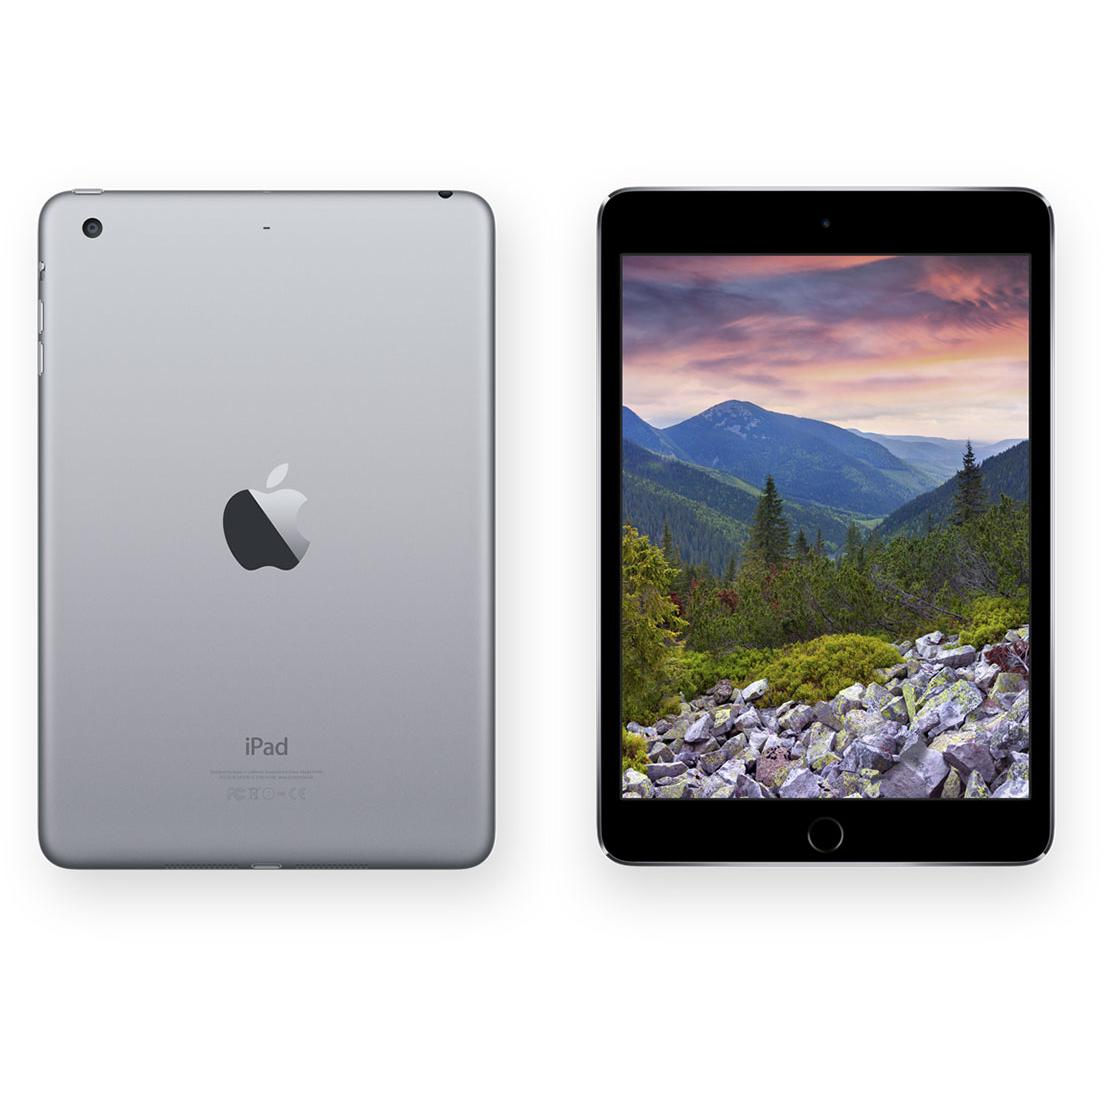 iPad mini 2 32 Gb 4G - Gris espacial - Libre